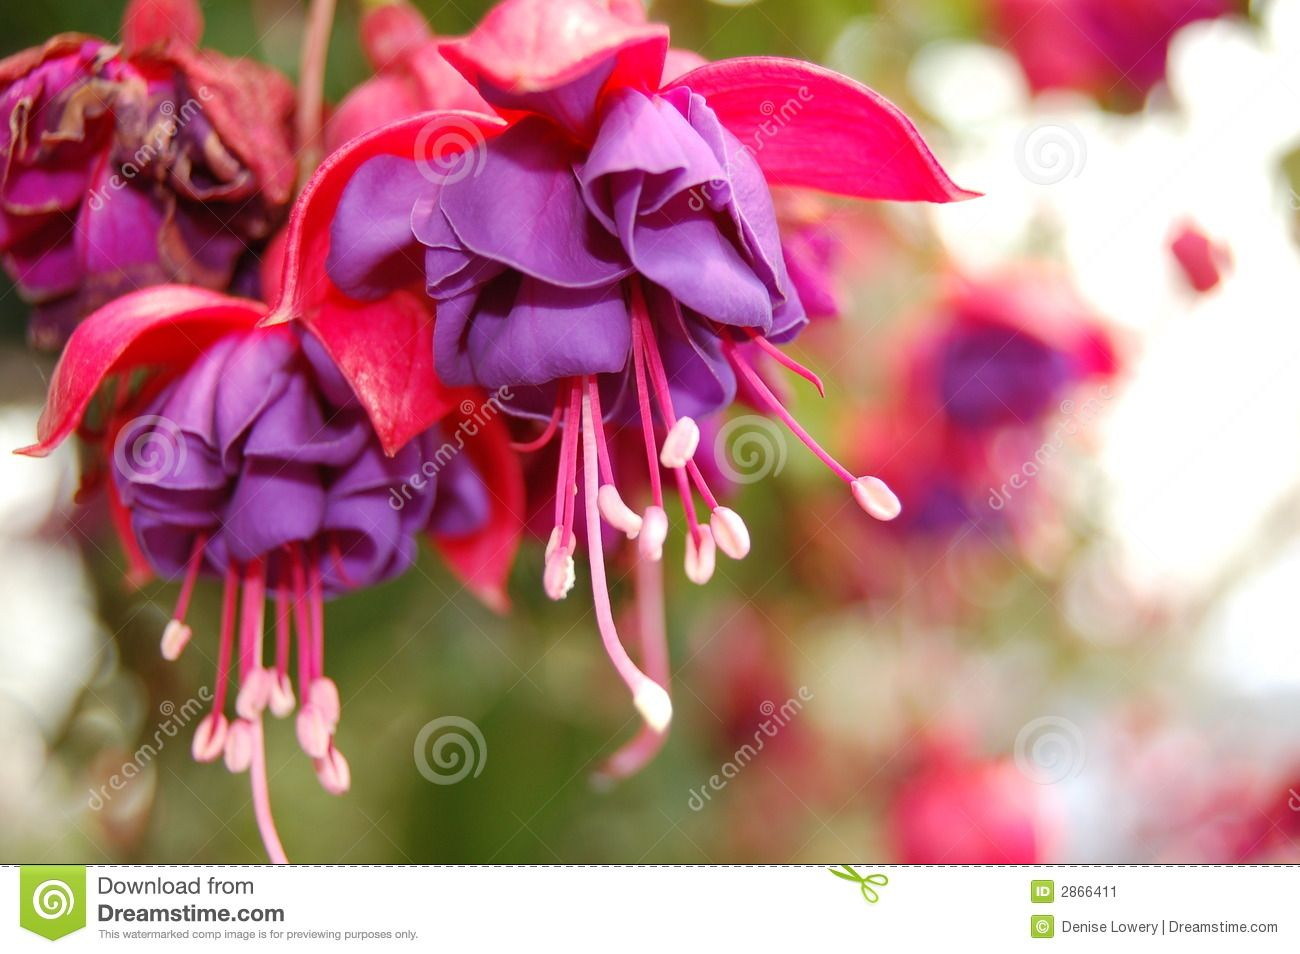 Blue Bleeding Heart Plant Displaying 17 Images For